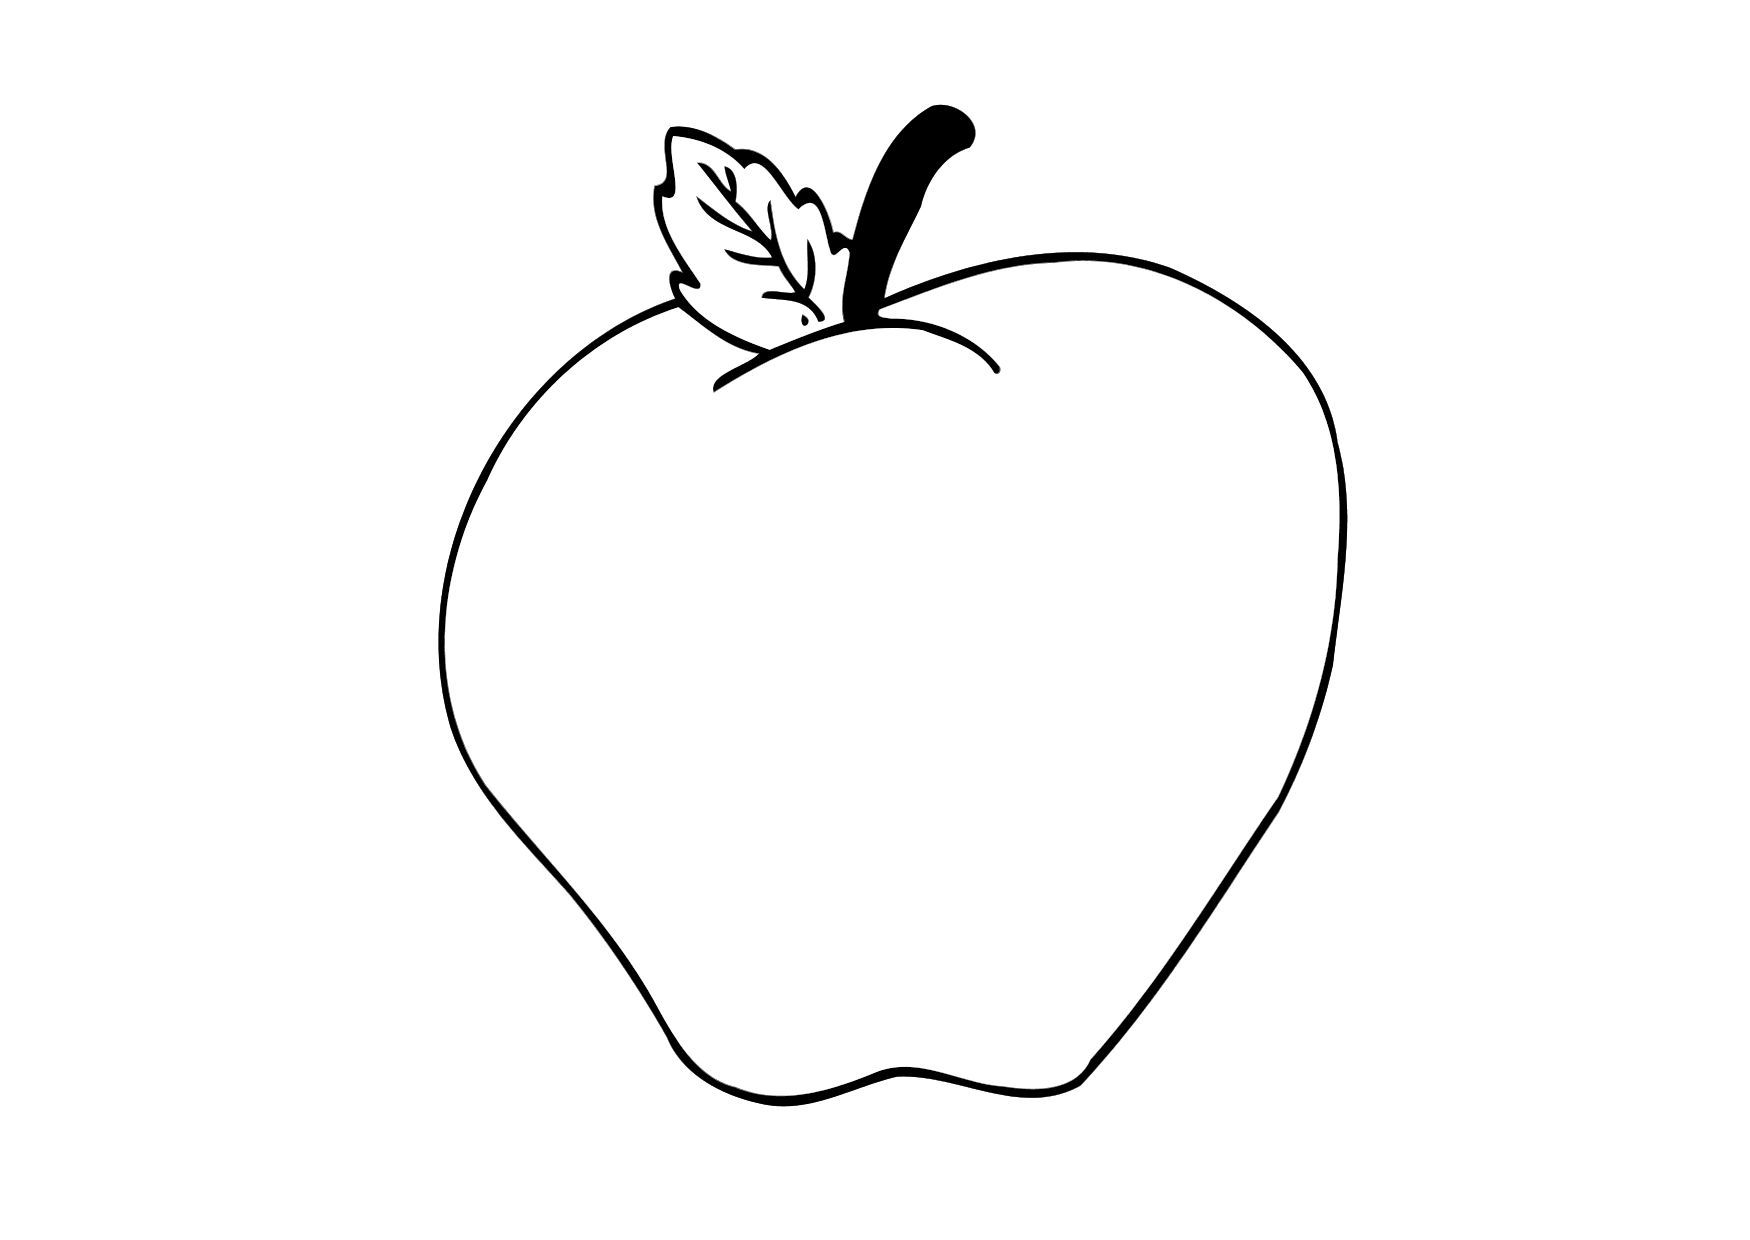 Apple Coloring Pages | Education | Pinterest